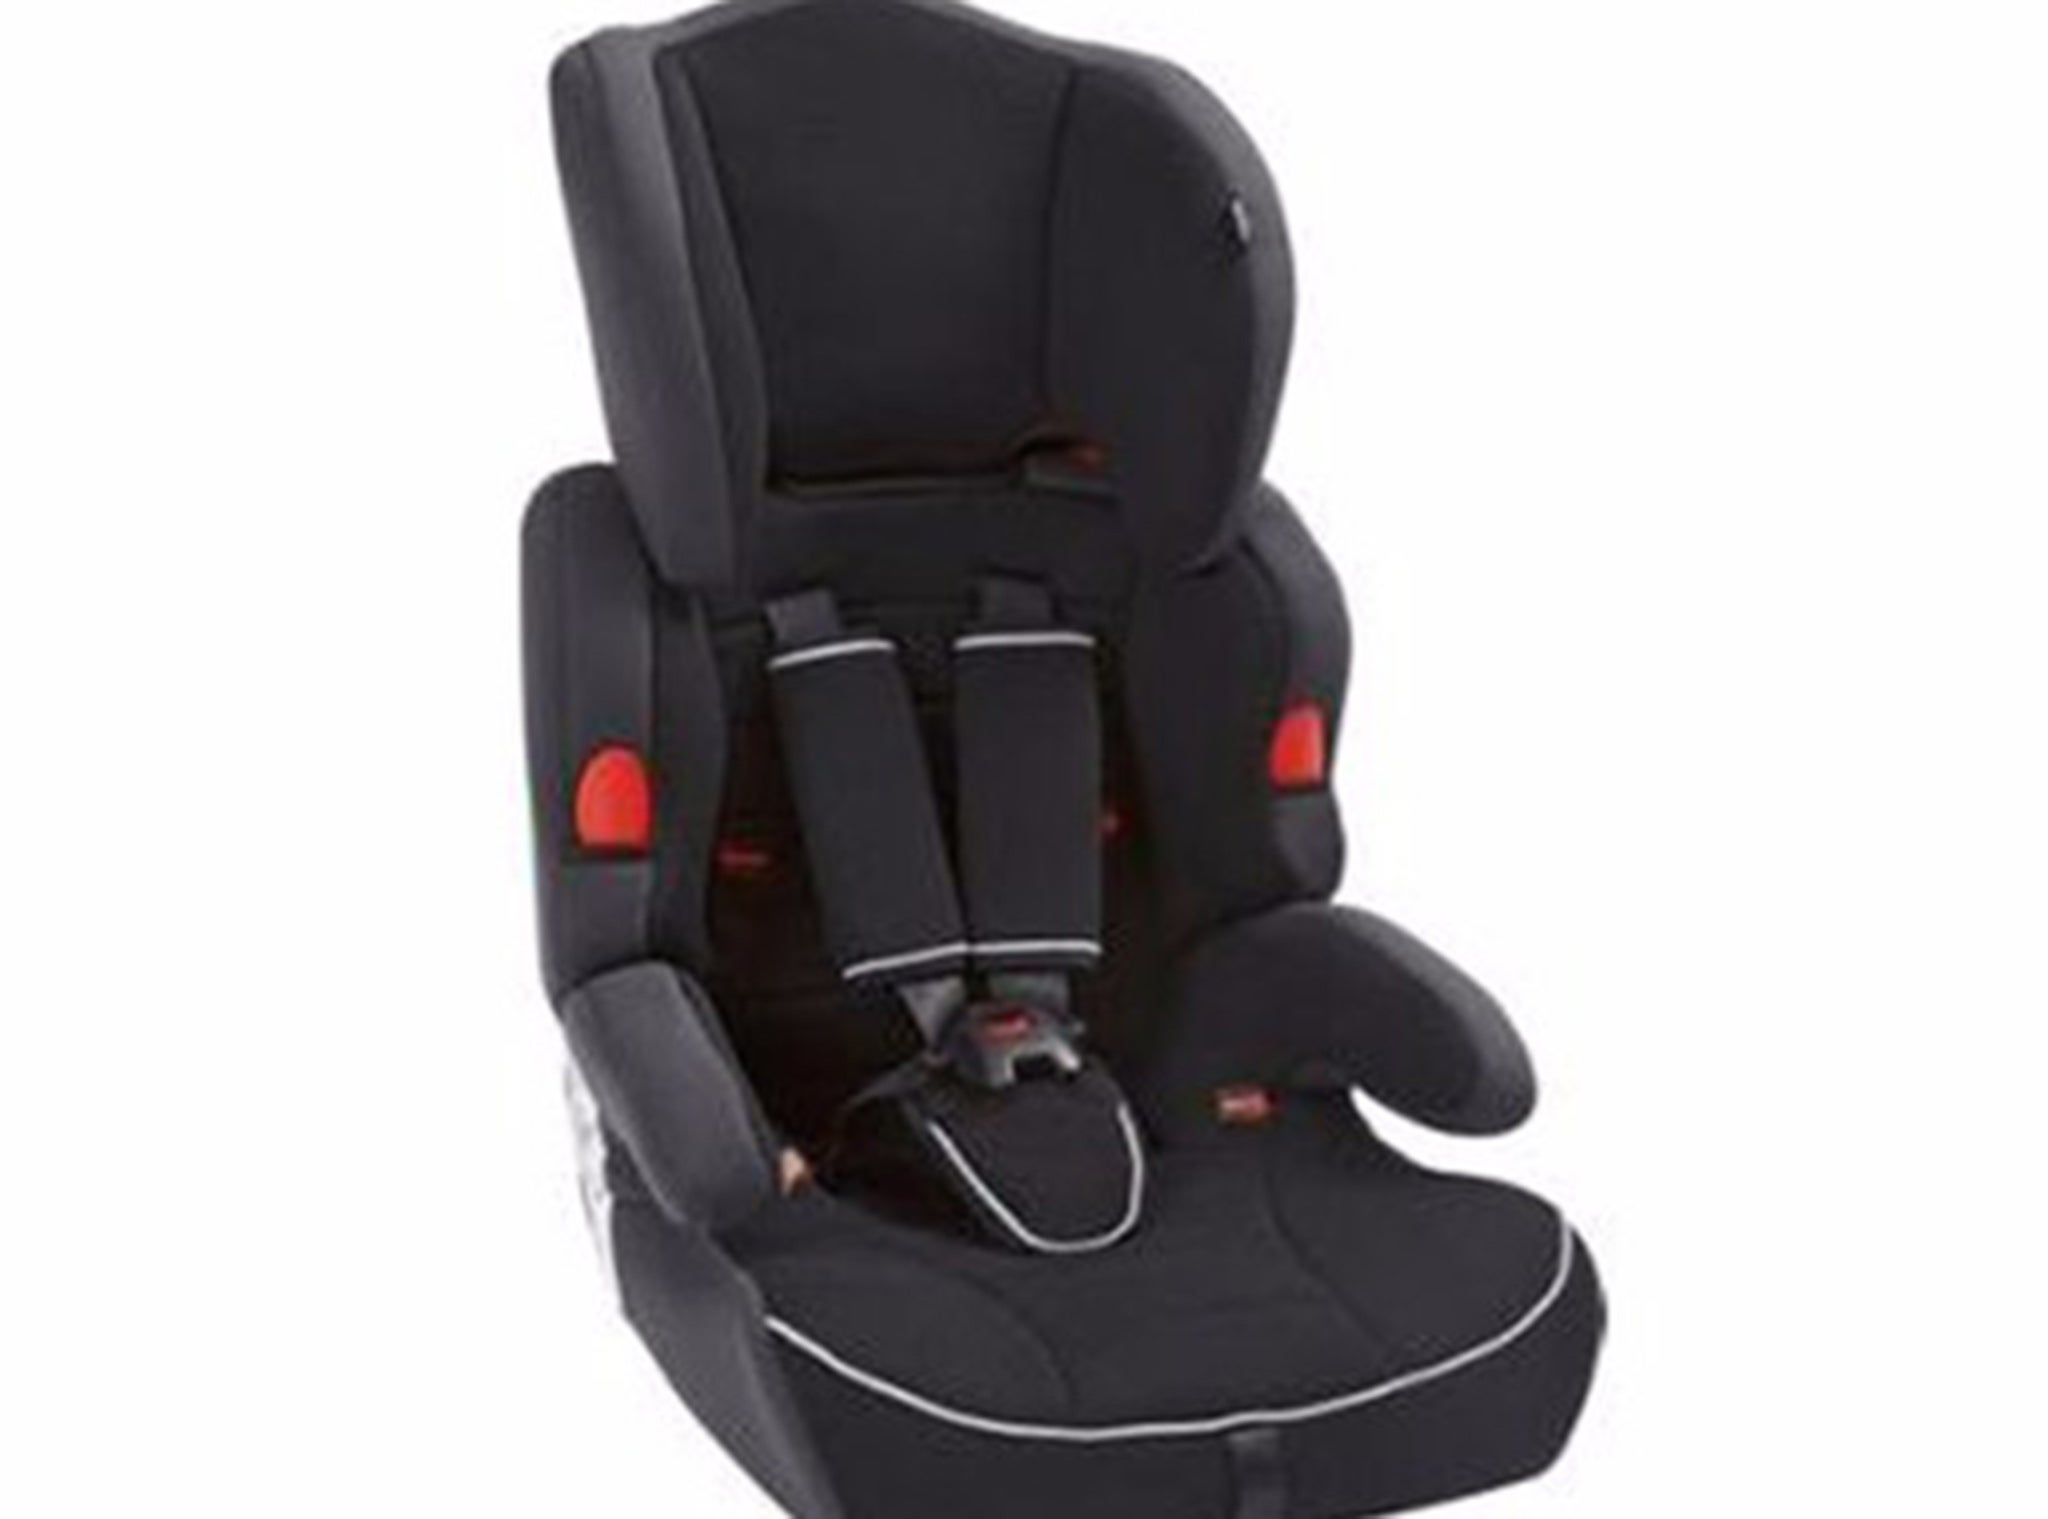 argos recalls five mamas papas car seat models over urgent safety concerns the independent. Black Bedroom Furniture Sets. Home Design Ideas